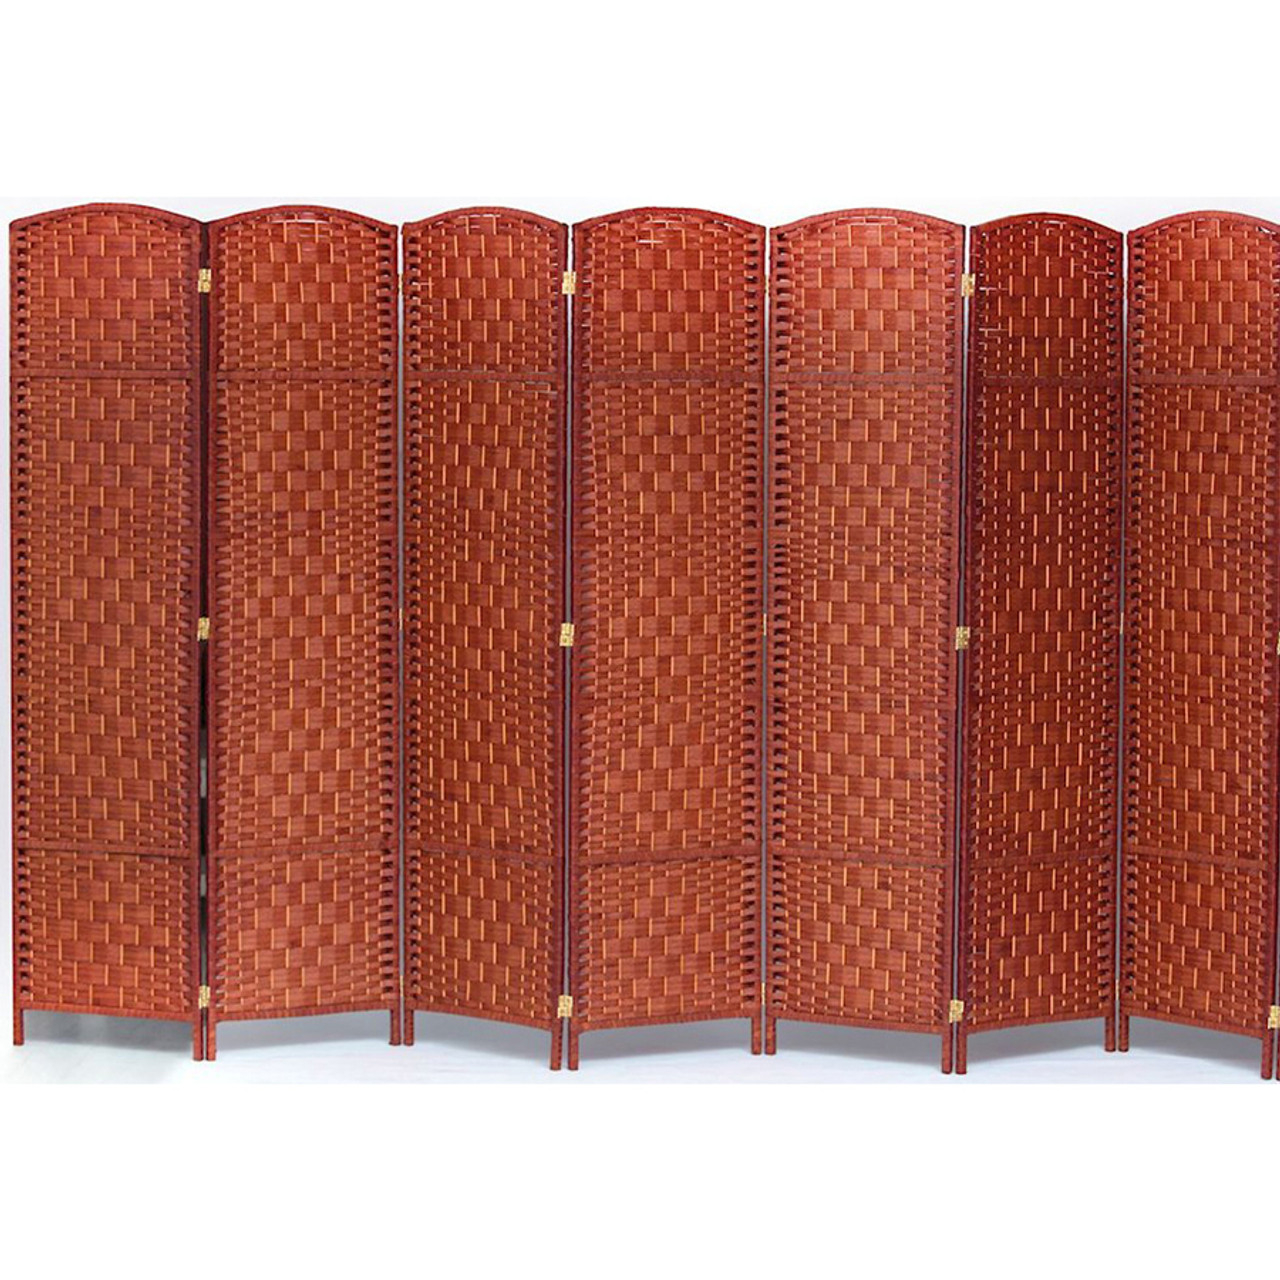 7 Panel Room Divider, Privacy Partition Screen Bamboo Woven Panel